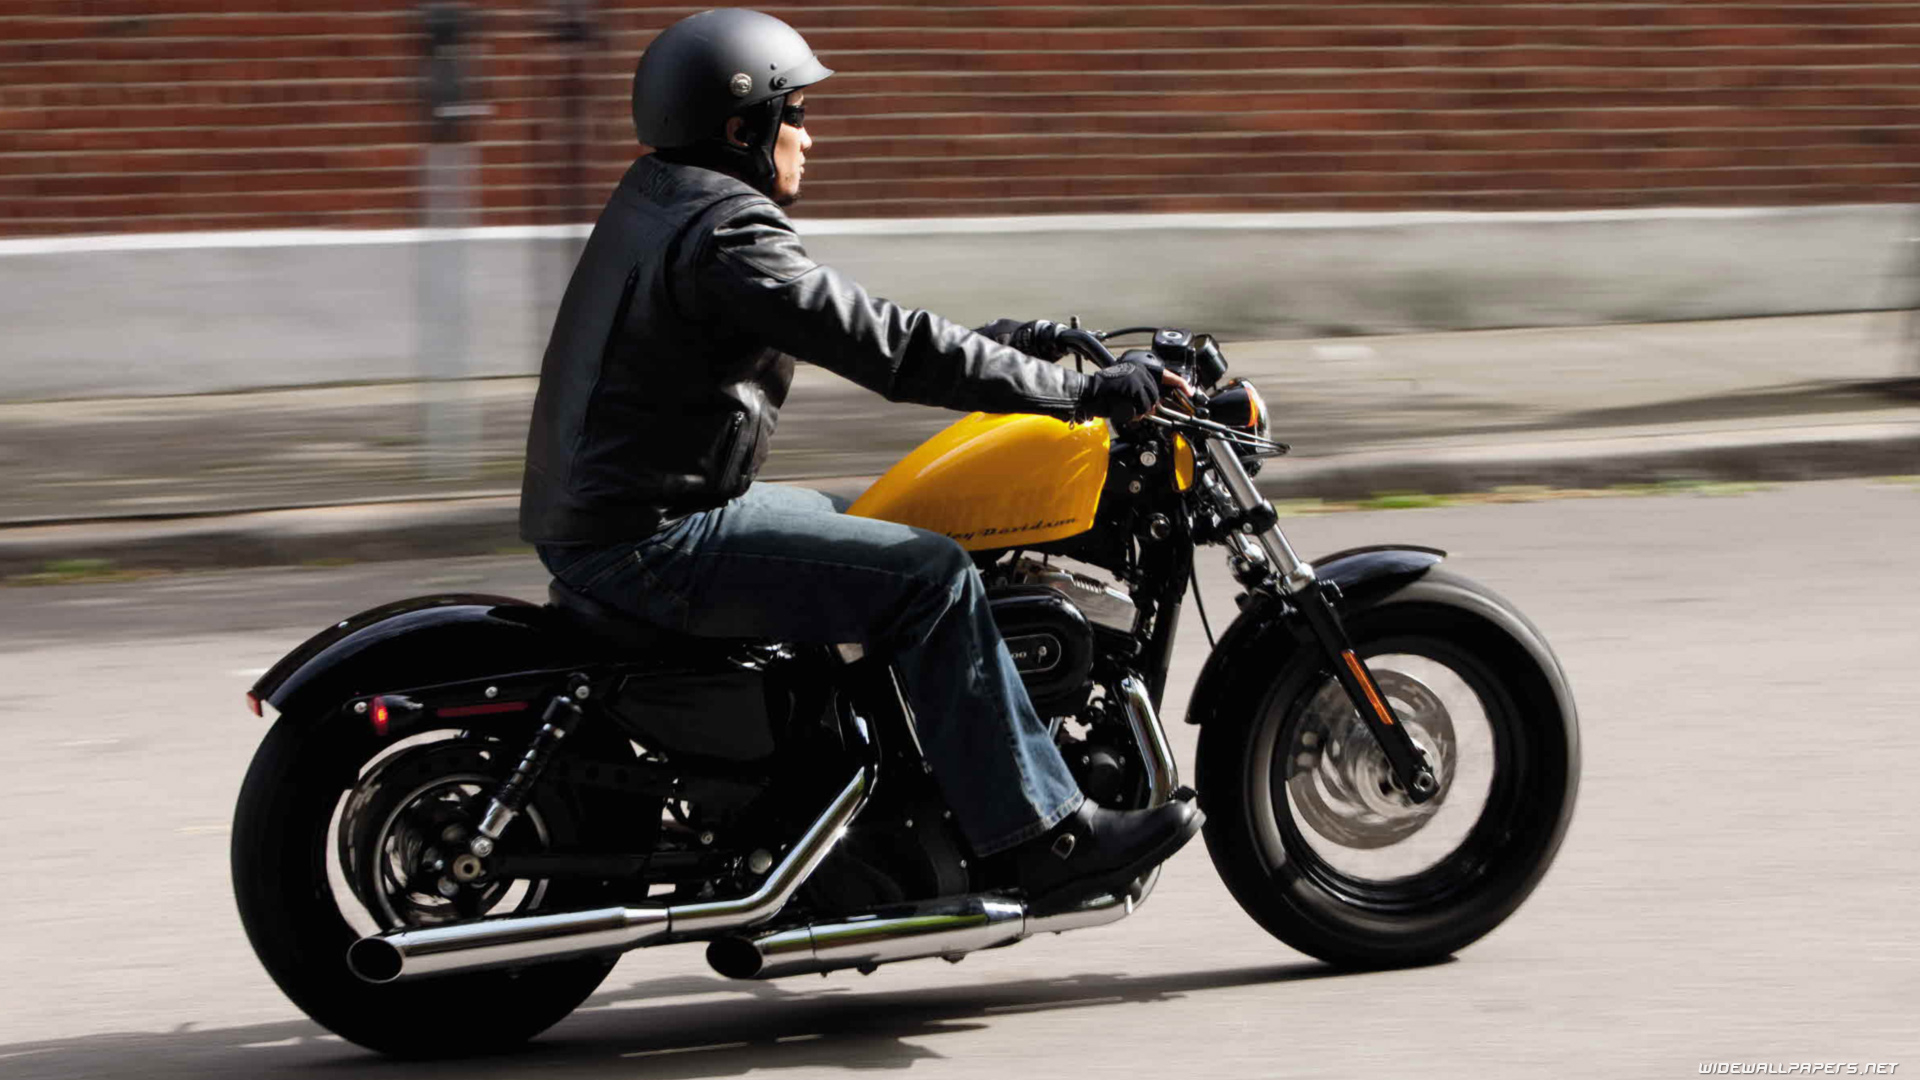 Harley Davidson Sportster Forty Eight Motorcycle Wallpapers